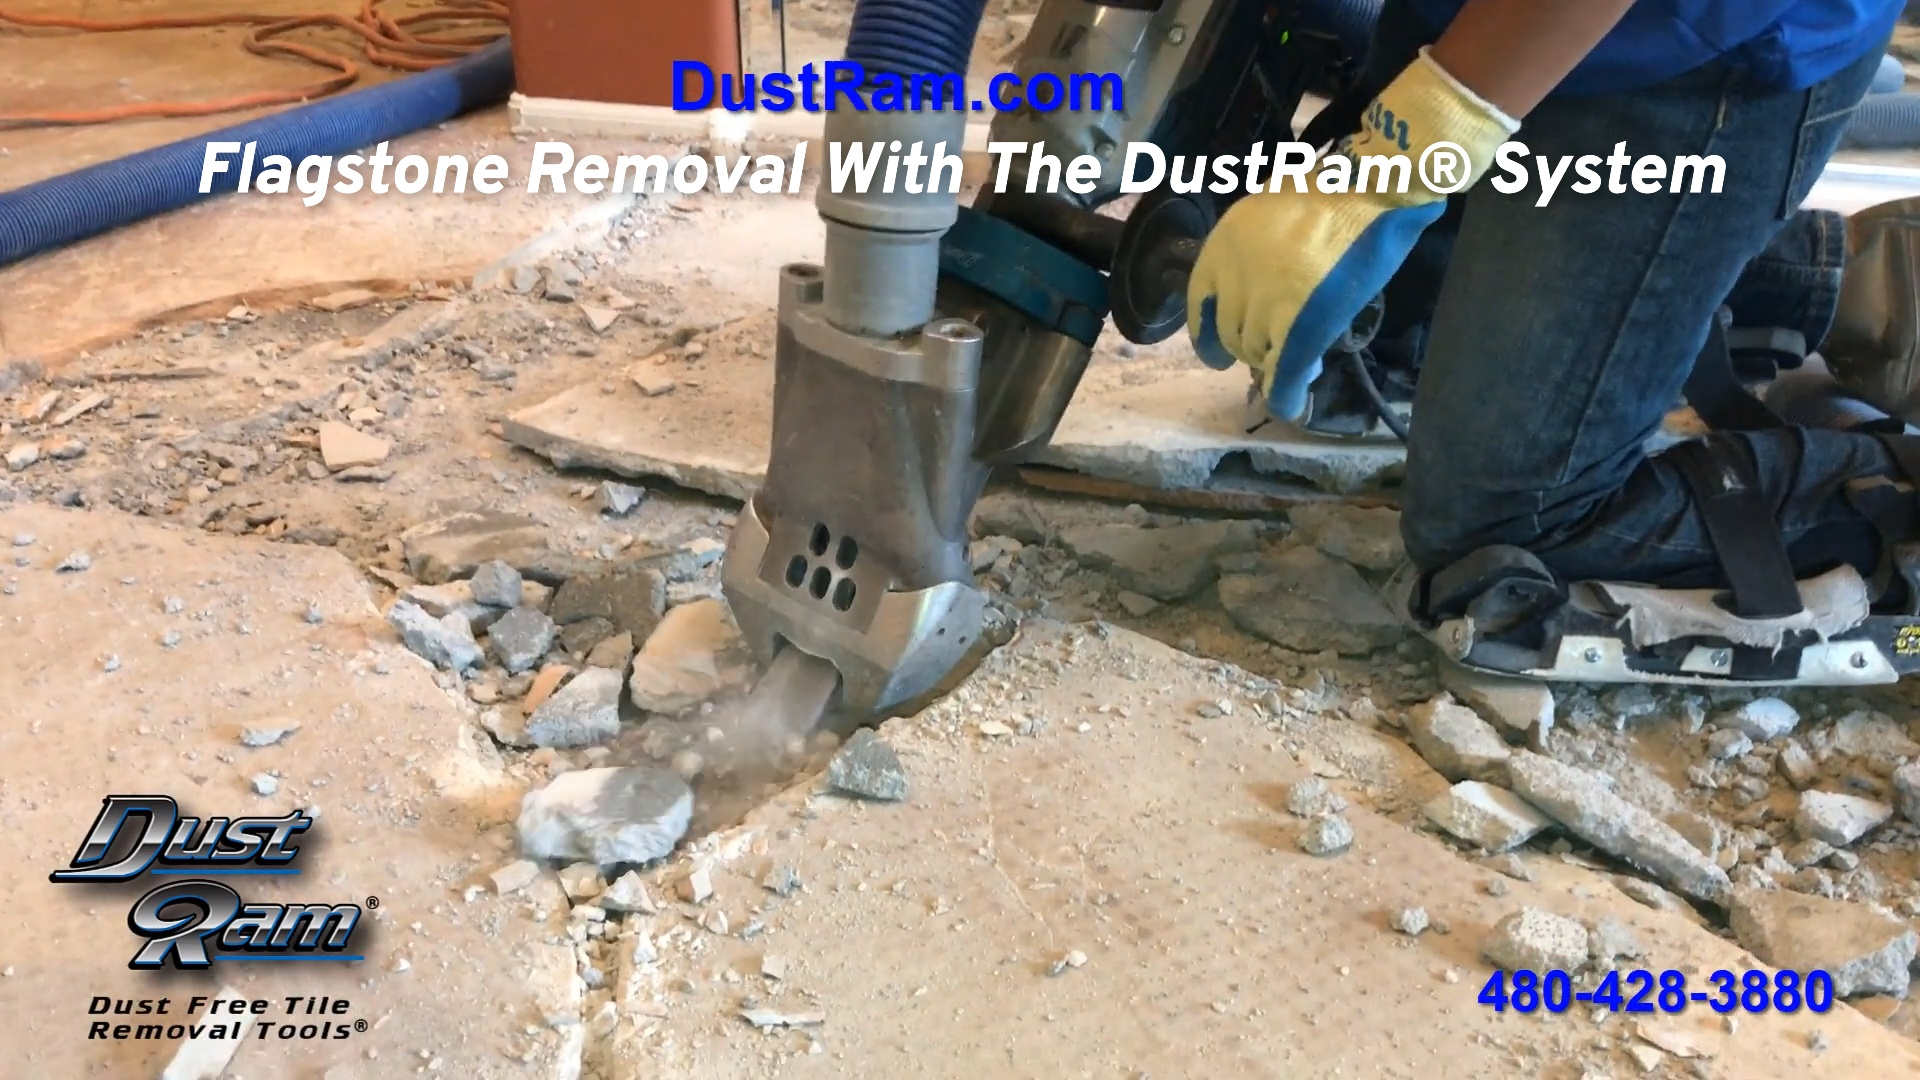 flagstone removal with the dustram system